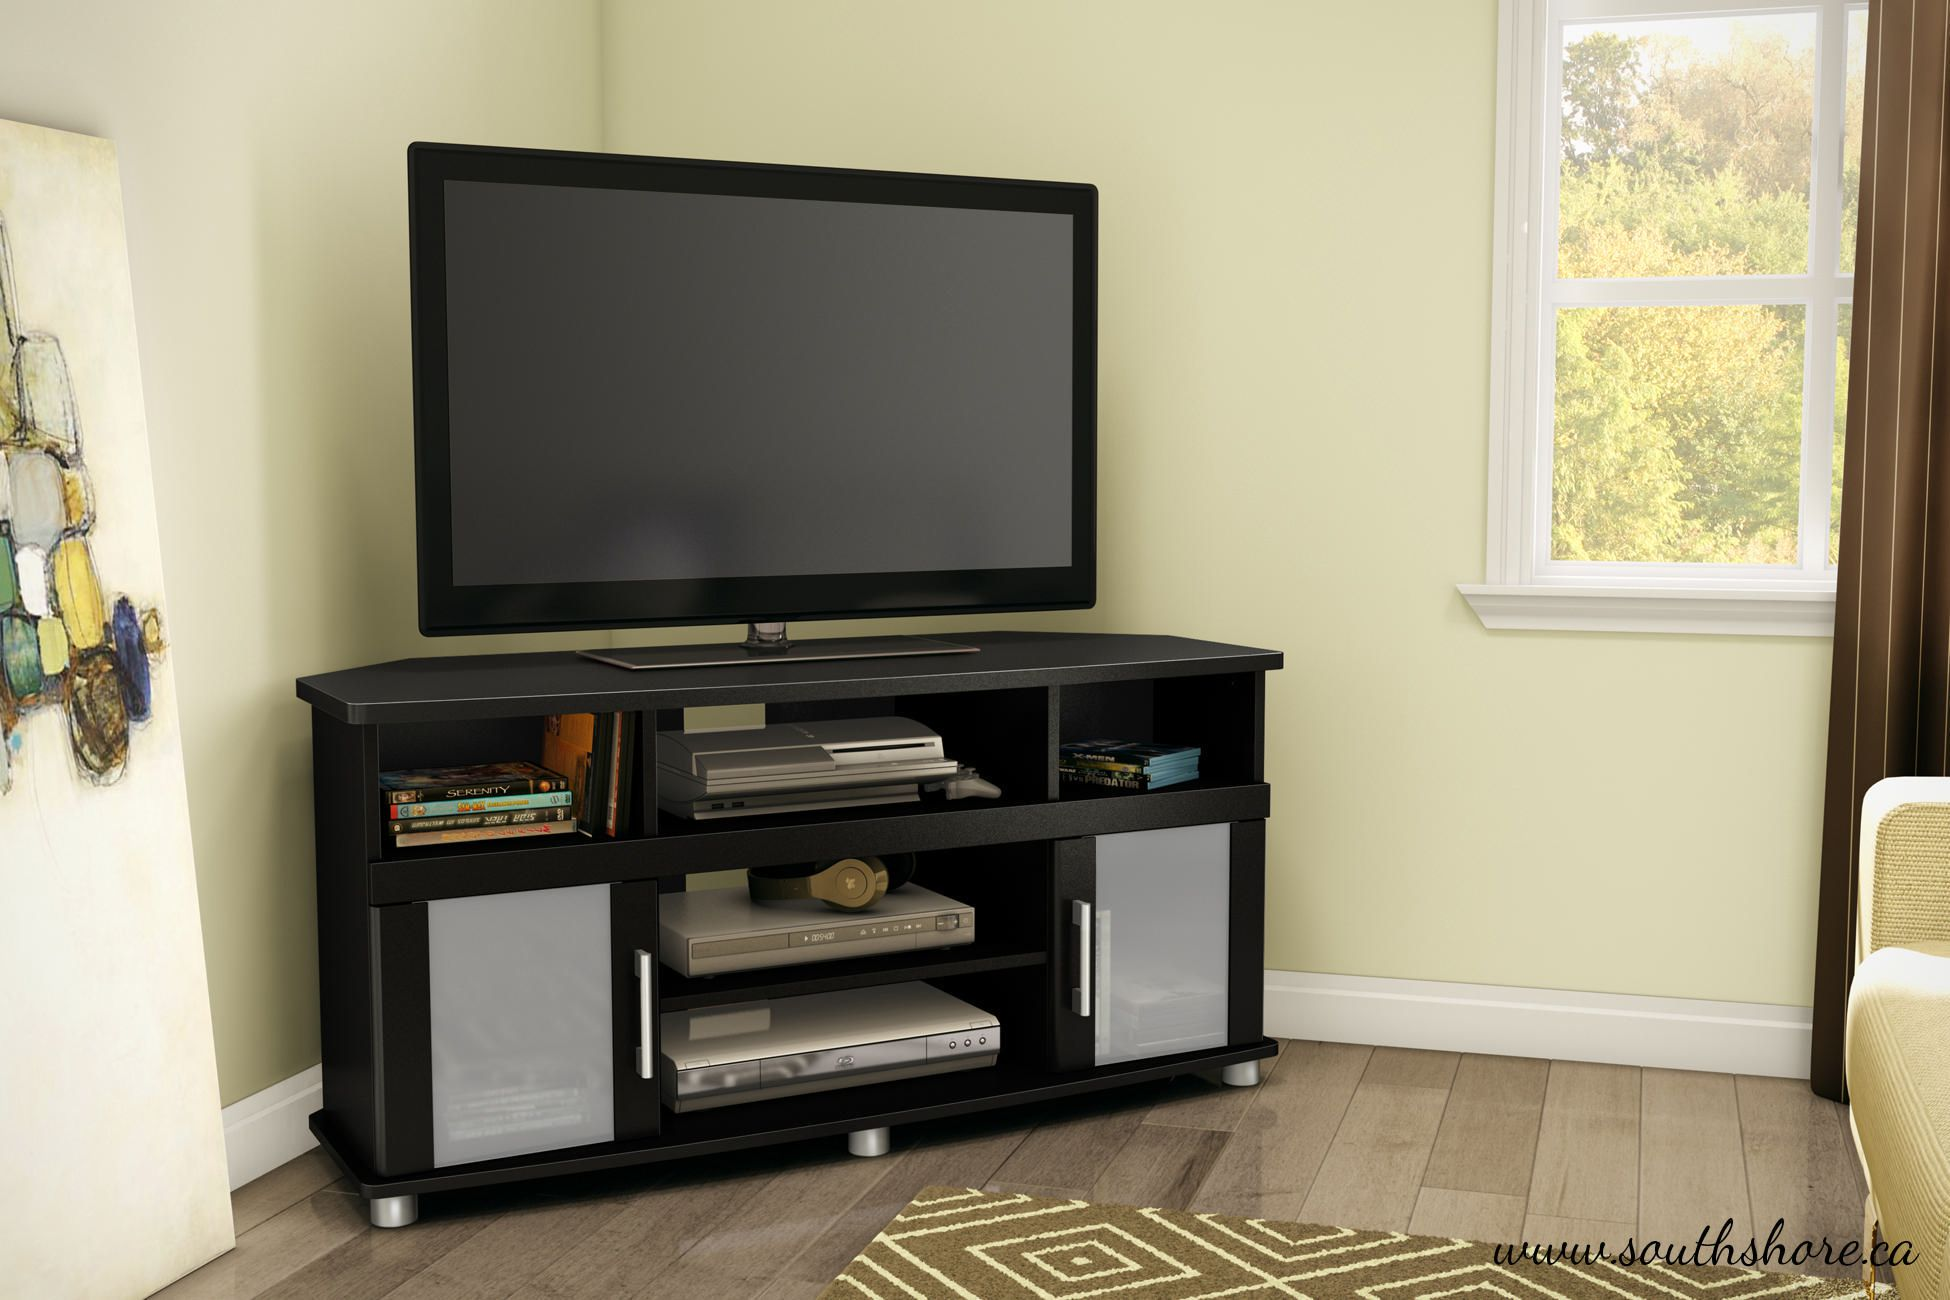 South Shore City Life Corner TV Stand For TVs Up To 50 Inches